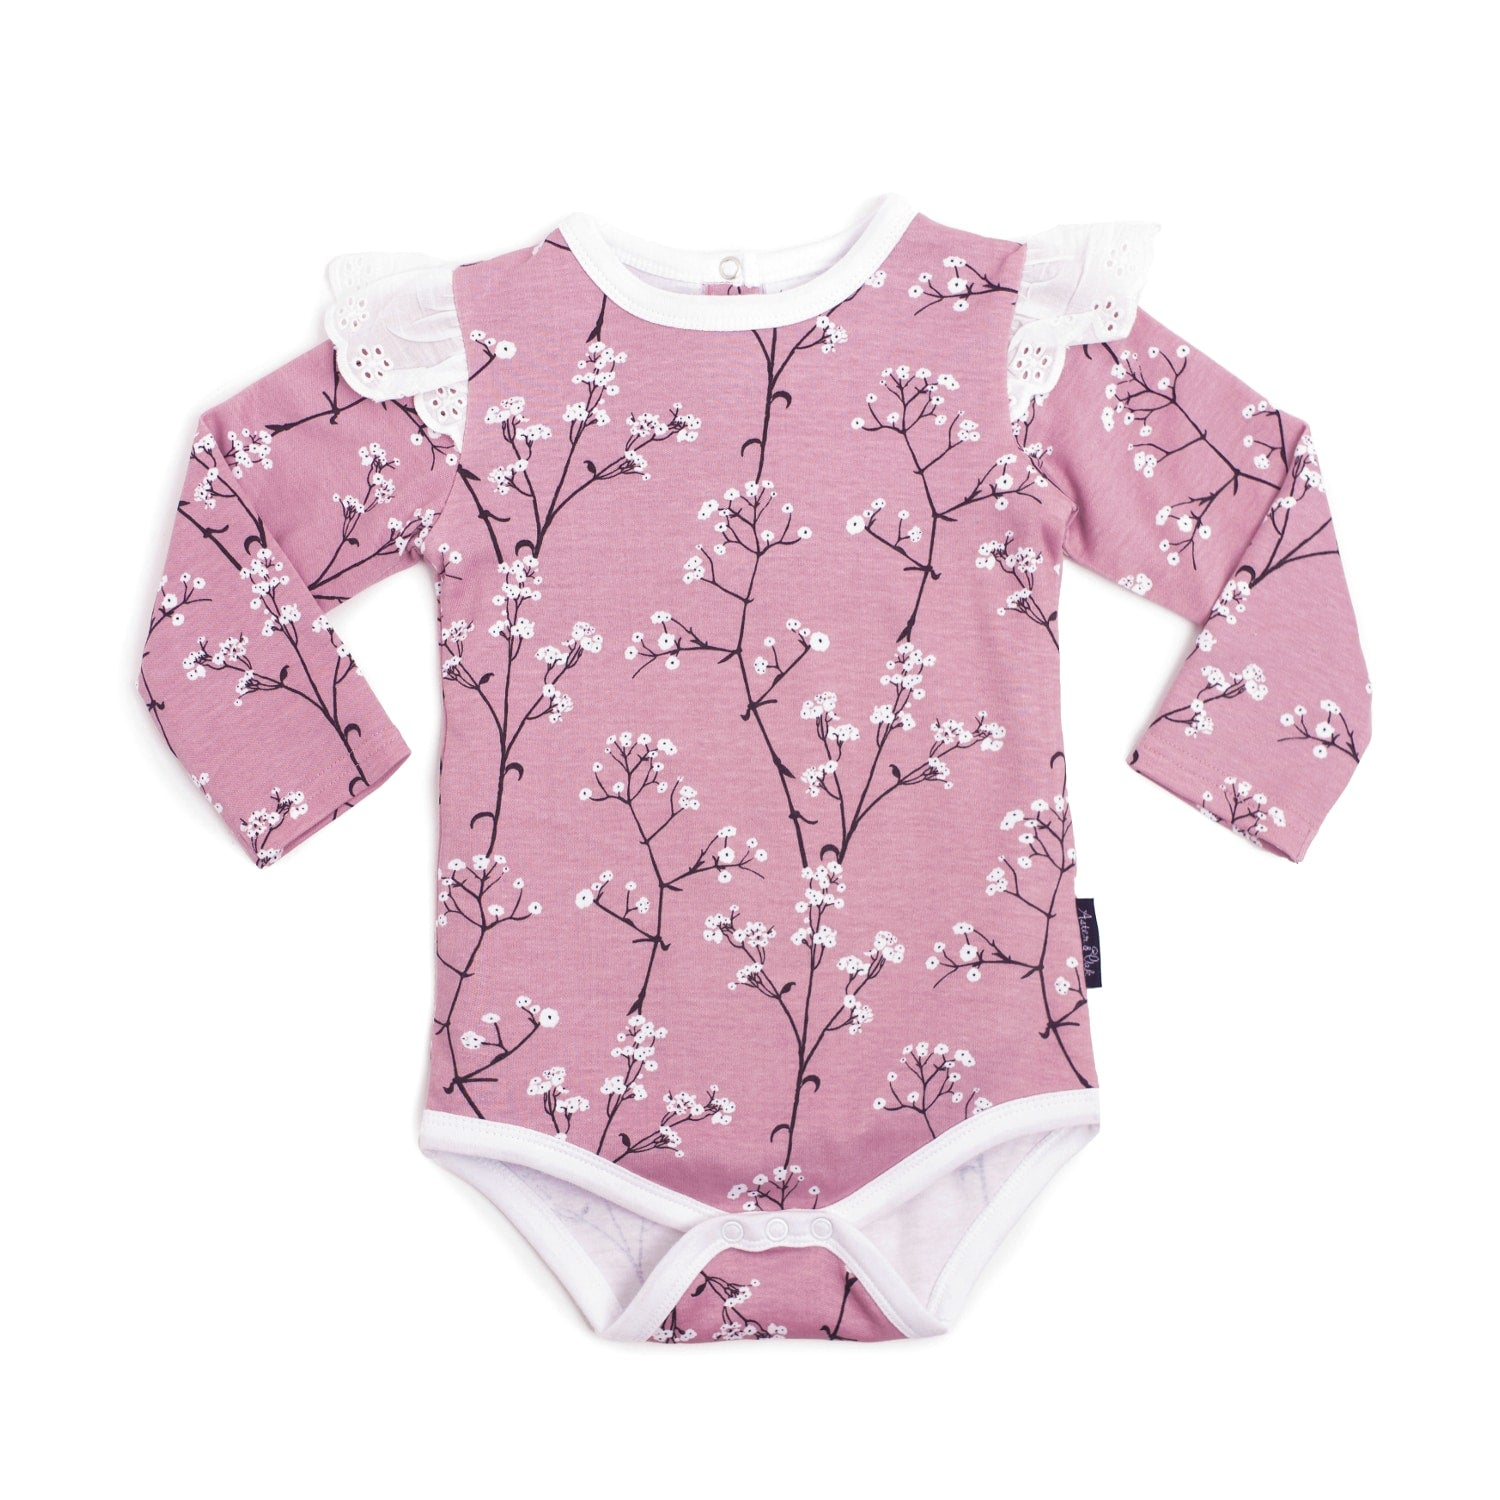 Aster & Oak Organic MAGICAL GARDEN Baby's Breath AOP Flutter Onesie